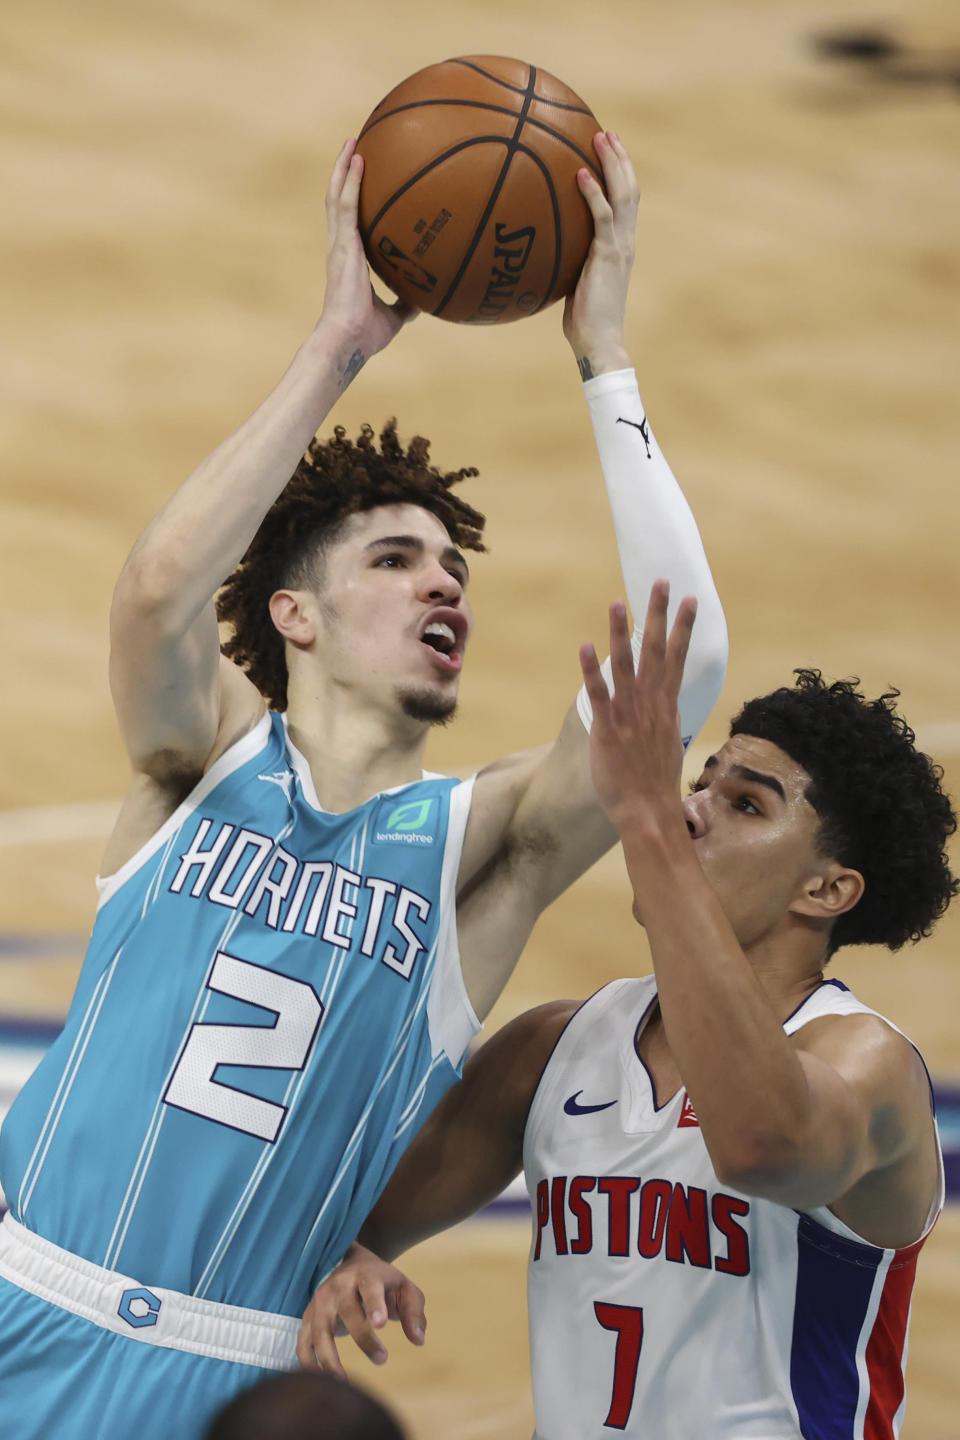 Charlotte Hornets guard LaMelo Ball, left, shoots against Detroit Pistons guard Killian Hayes in the second half of an NBA basketball game in Charlotte, N.C., Saturday, May 1, 2021. (AP Photo/Nell Redmond)